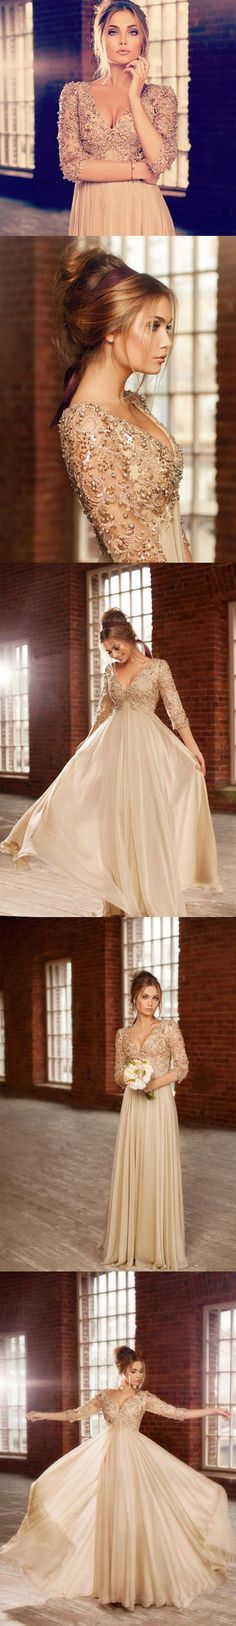 Simple Prom Dresses, chiffon prom dresses champagne prom dress modest prom gown pearl wedding gowns beaded evening dress evening gowns sparkly party gowns crystals prom gown with long sleeves Modest Prom Gowns, Prom Dress 2014, Chiffon Evening Dresses, Evening Gowns, Bridesmaid Dresses, Prom Dresses, Wedding Dresses, Dresses 2014, Prom 2016